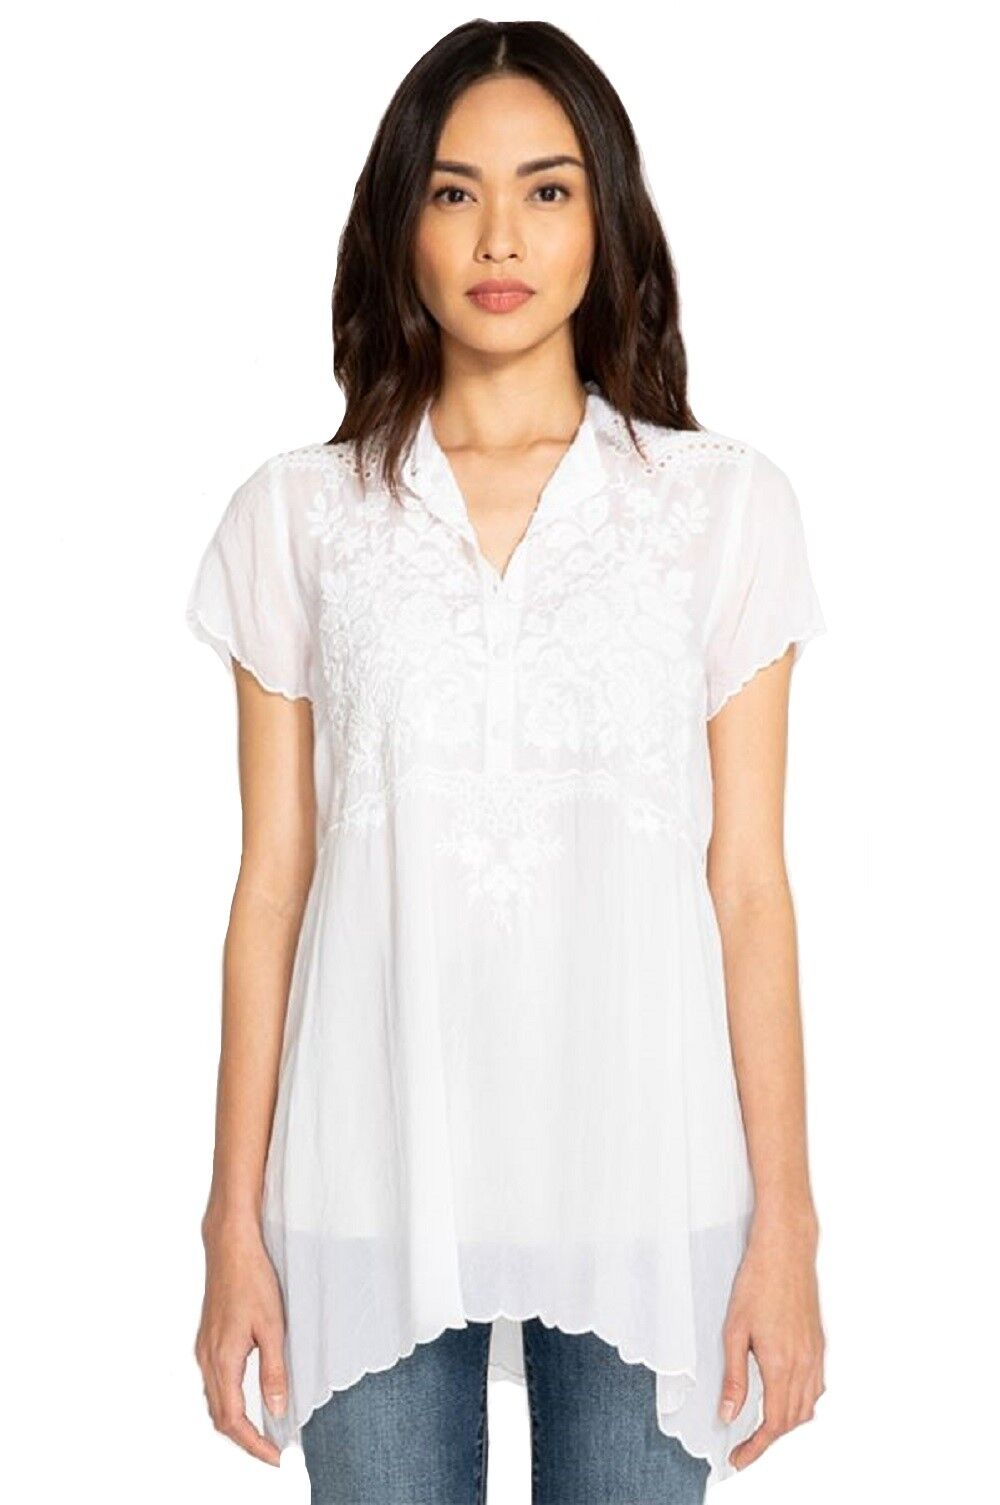 ca2033be105957 Details about Johnny Was Britta Tonal Tunic - C22918-D